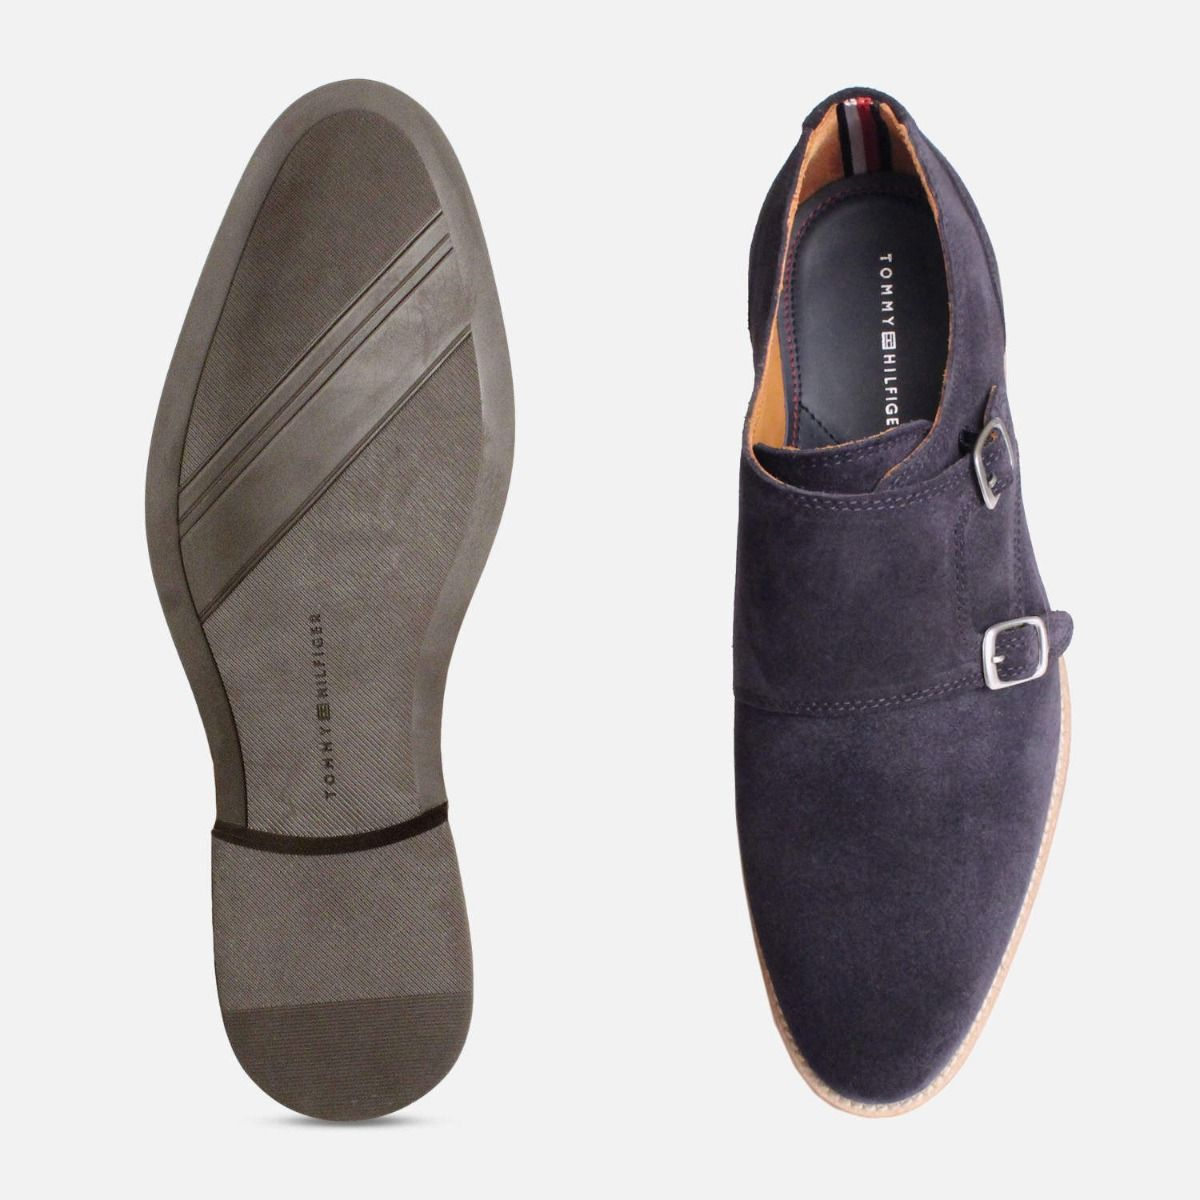 Monk Strap Tommy Hilfiger Shoes in Navy Blue Suede